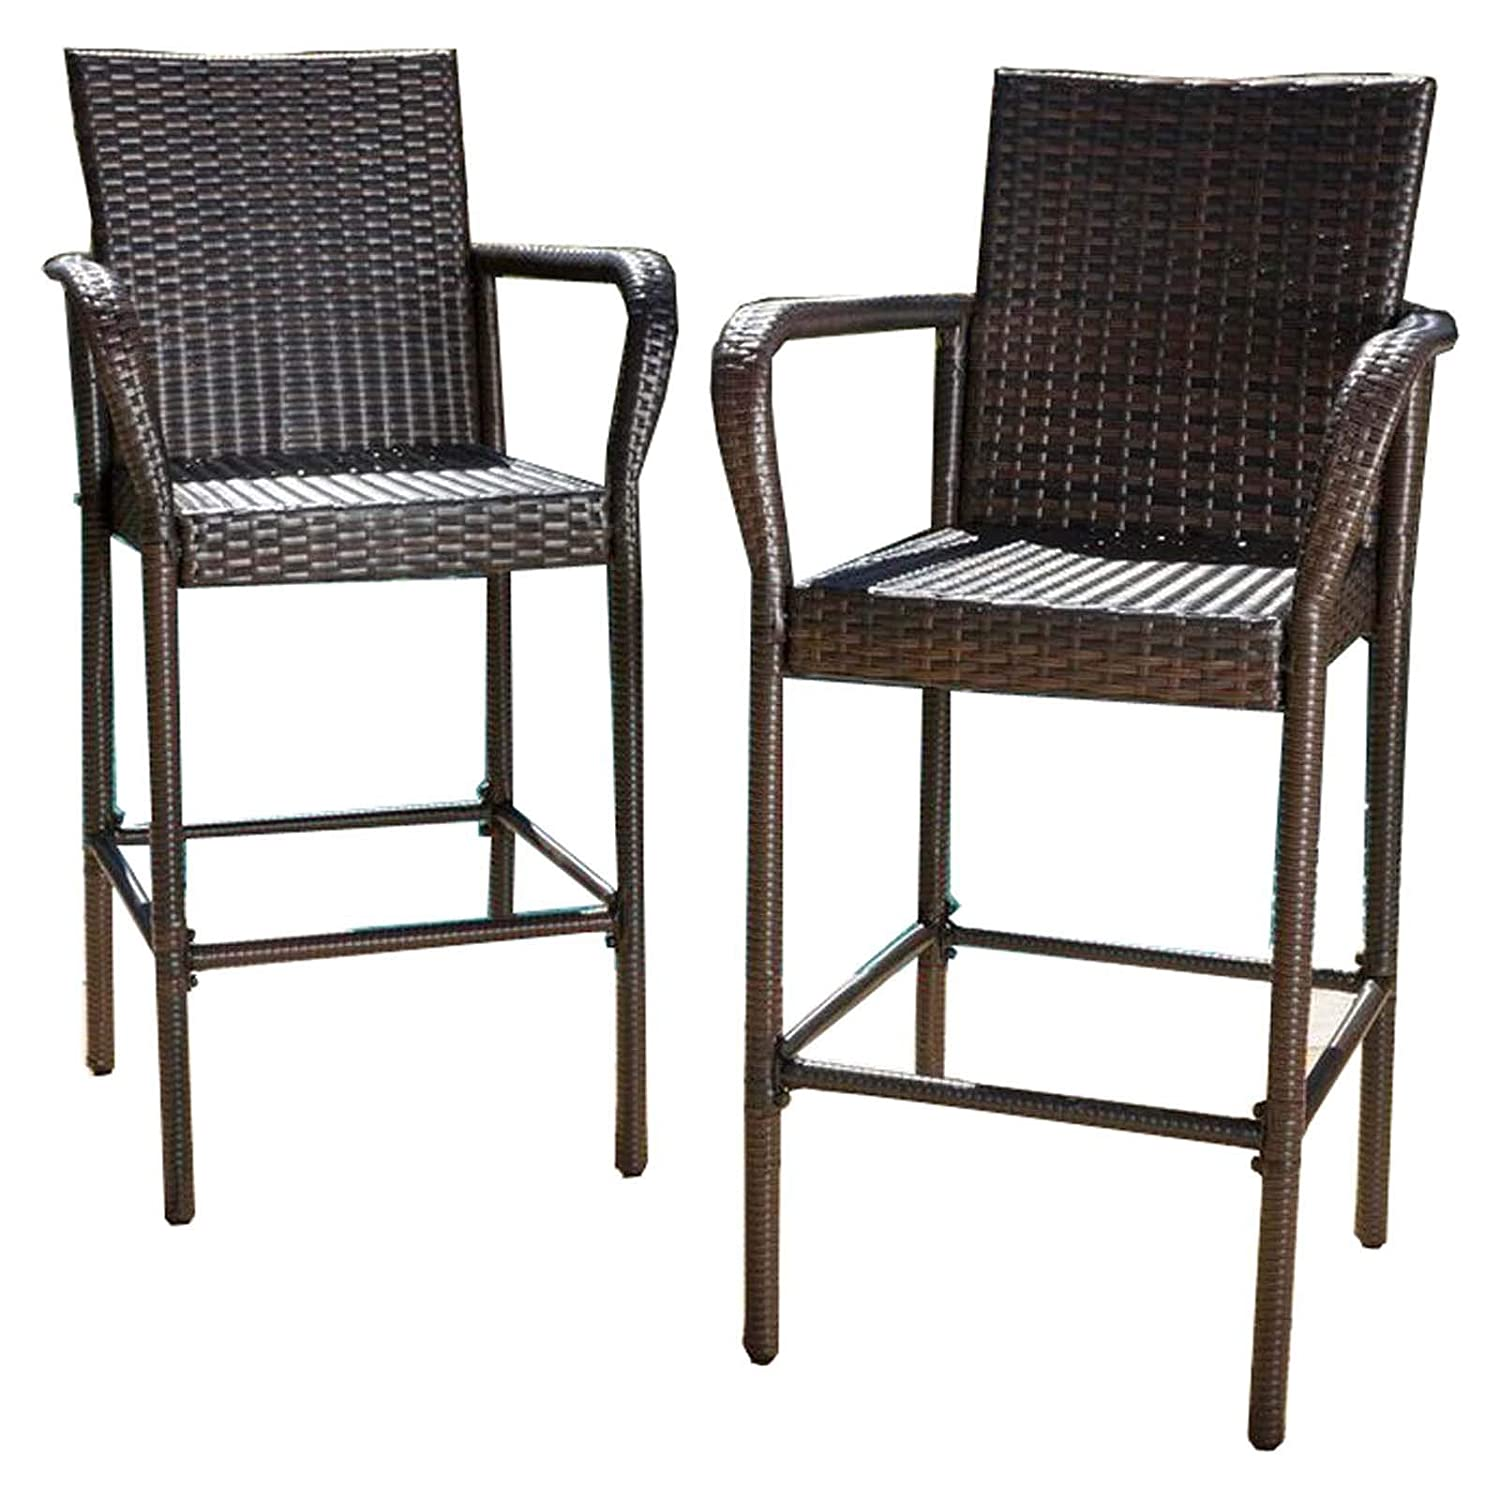 Christopher Knight Home 295946 Stewart Outdoor Bar Stool, Set of 2 Brown